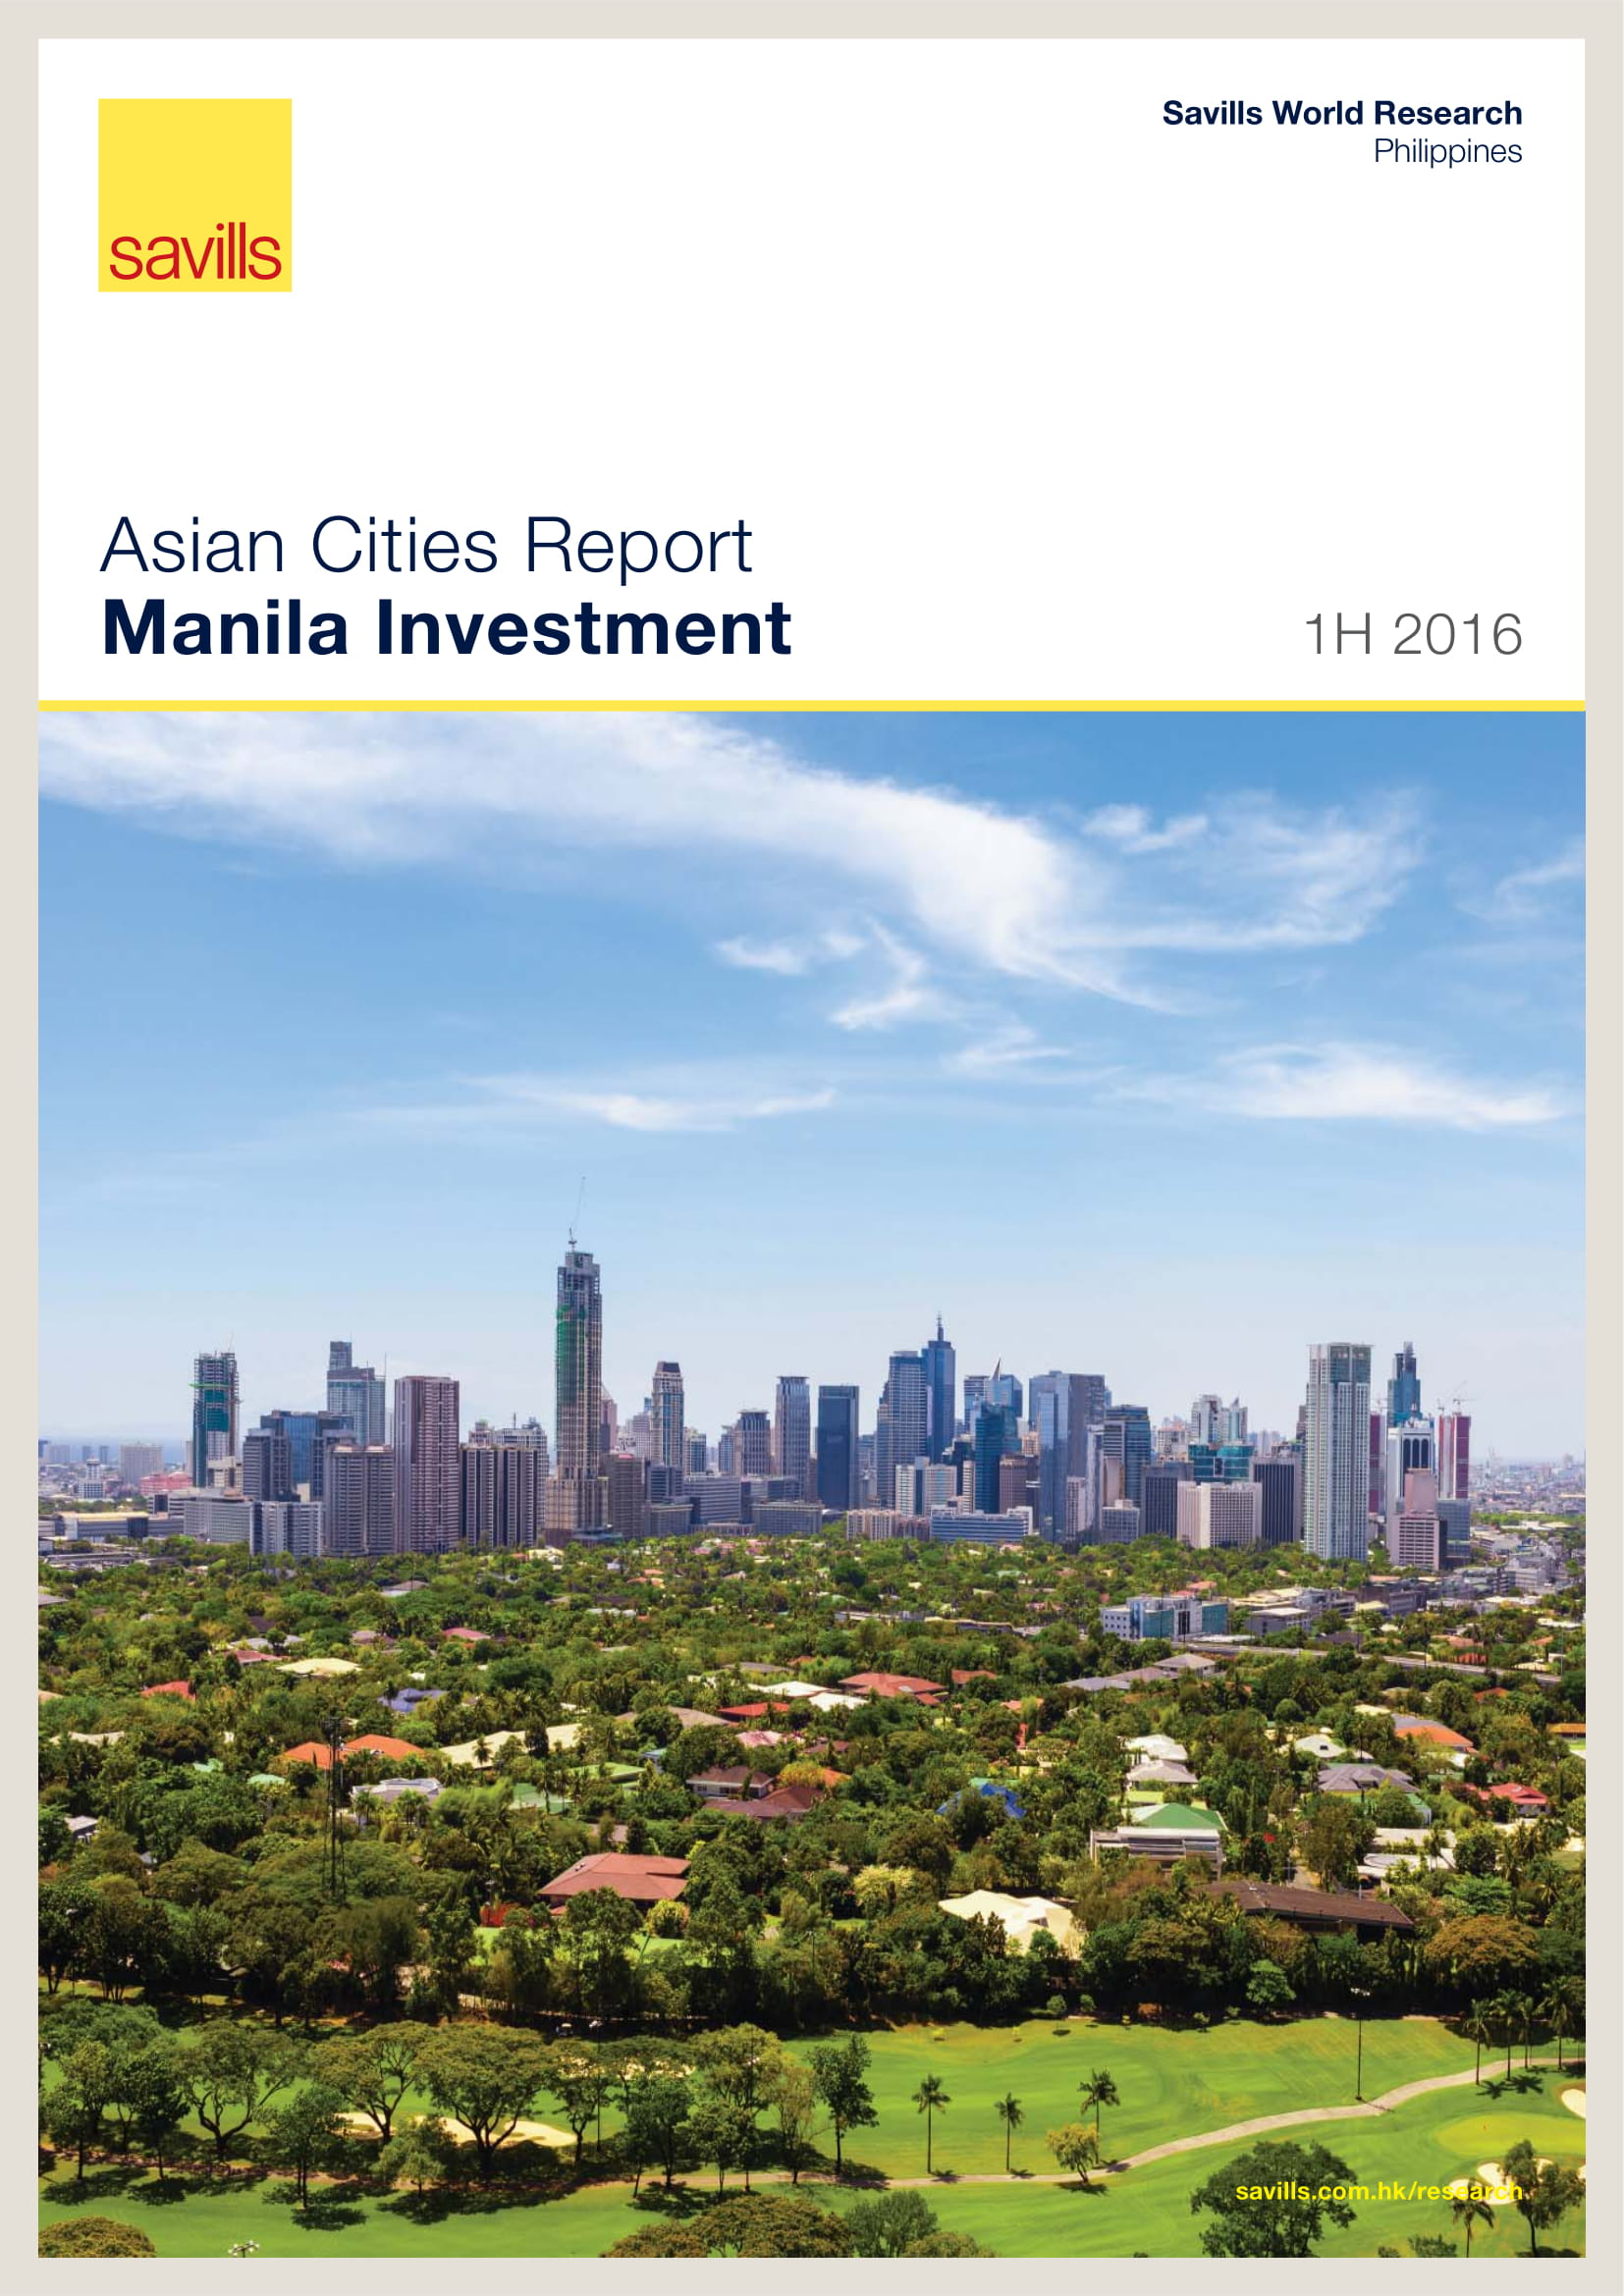 Asian Cities Report Manila Investment 1H 2016